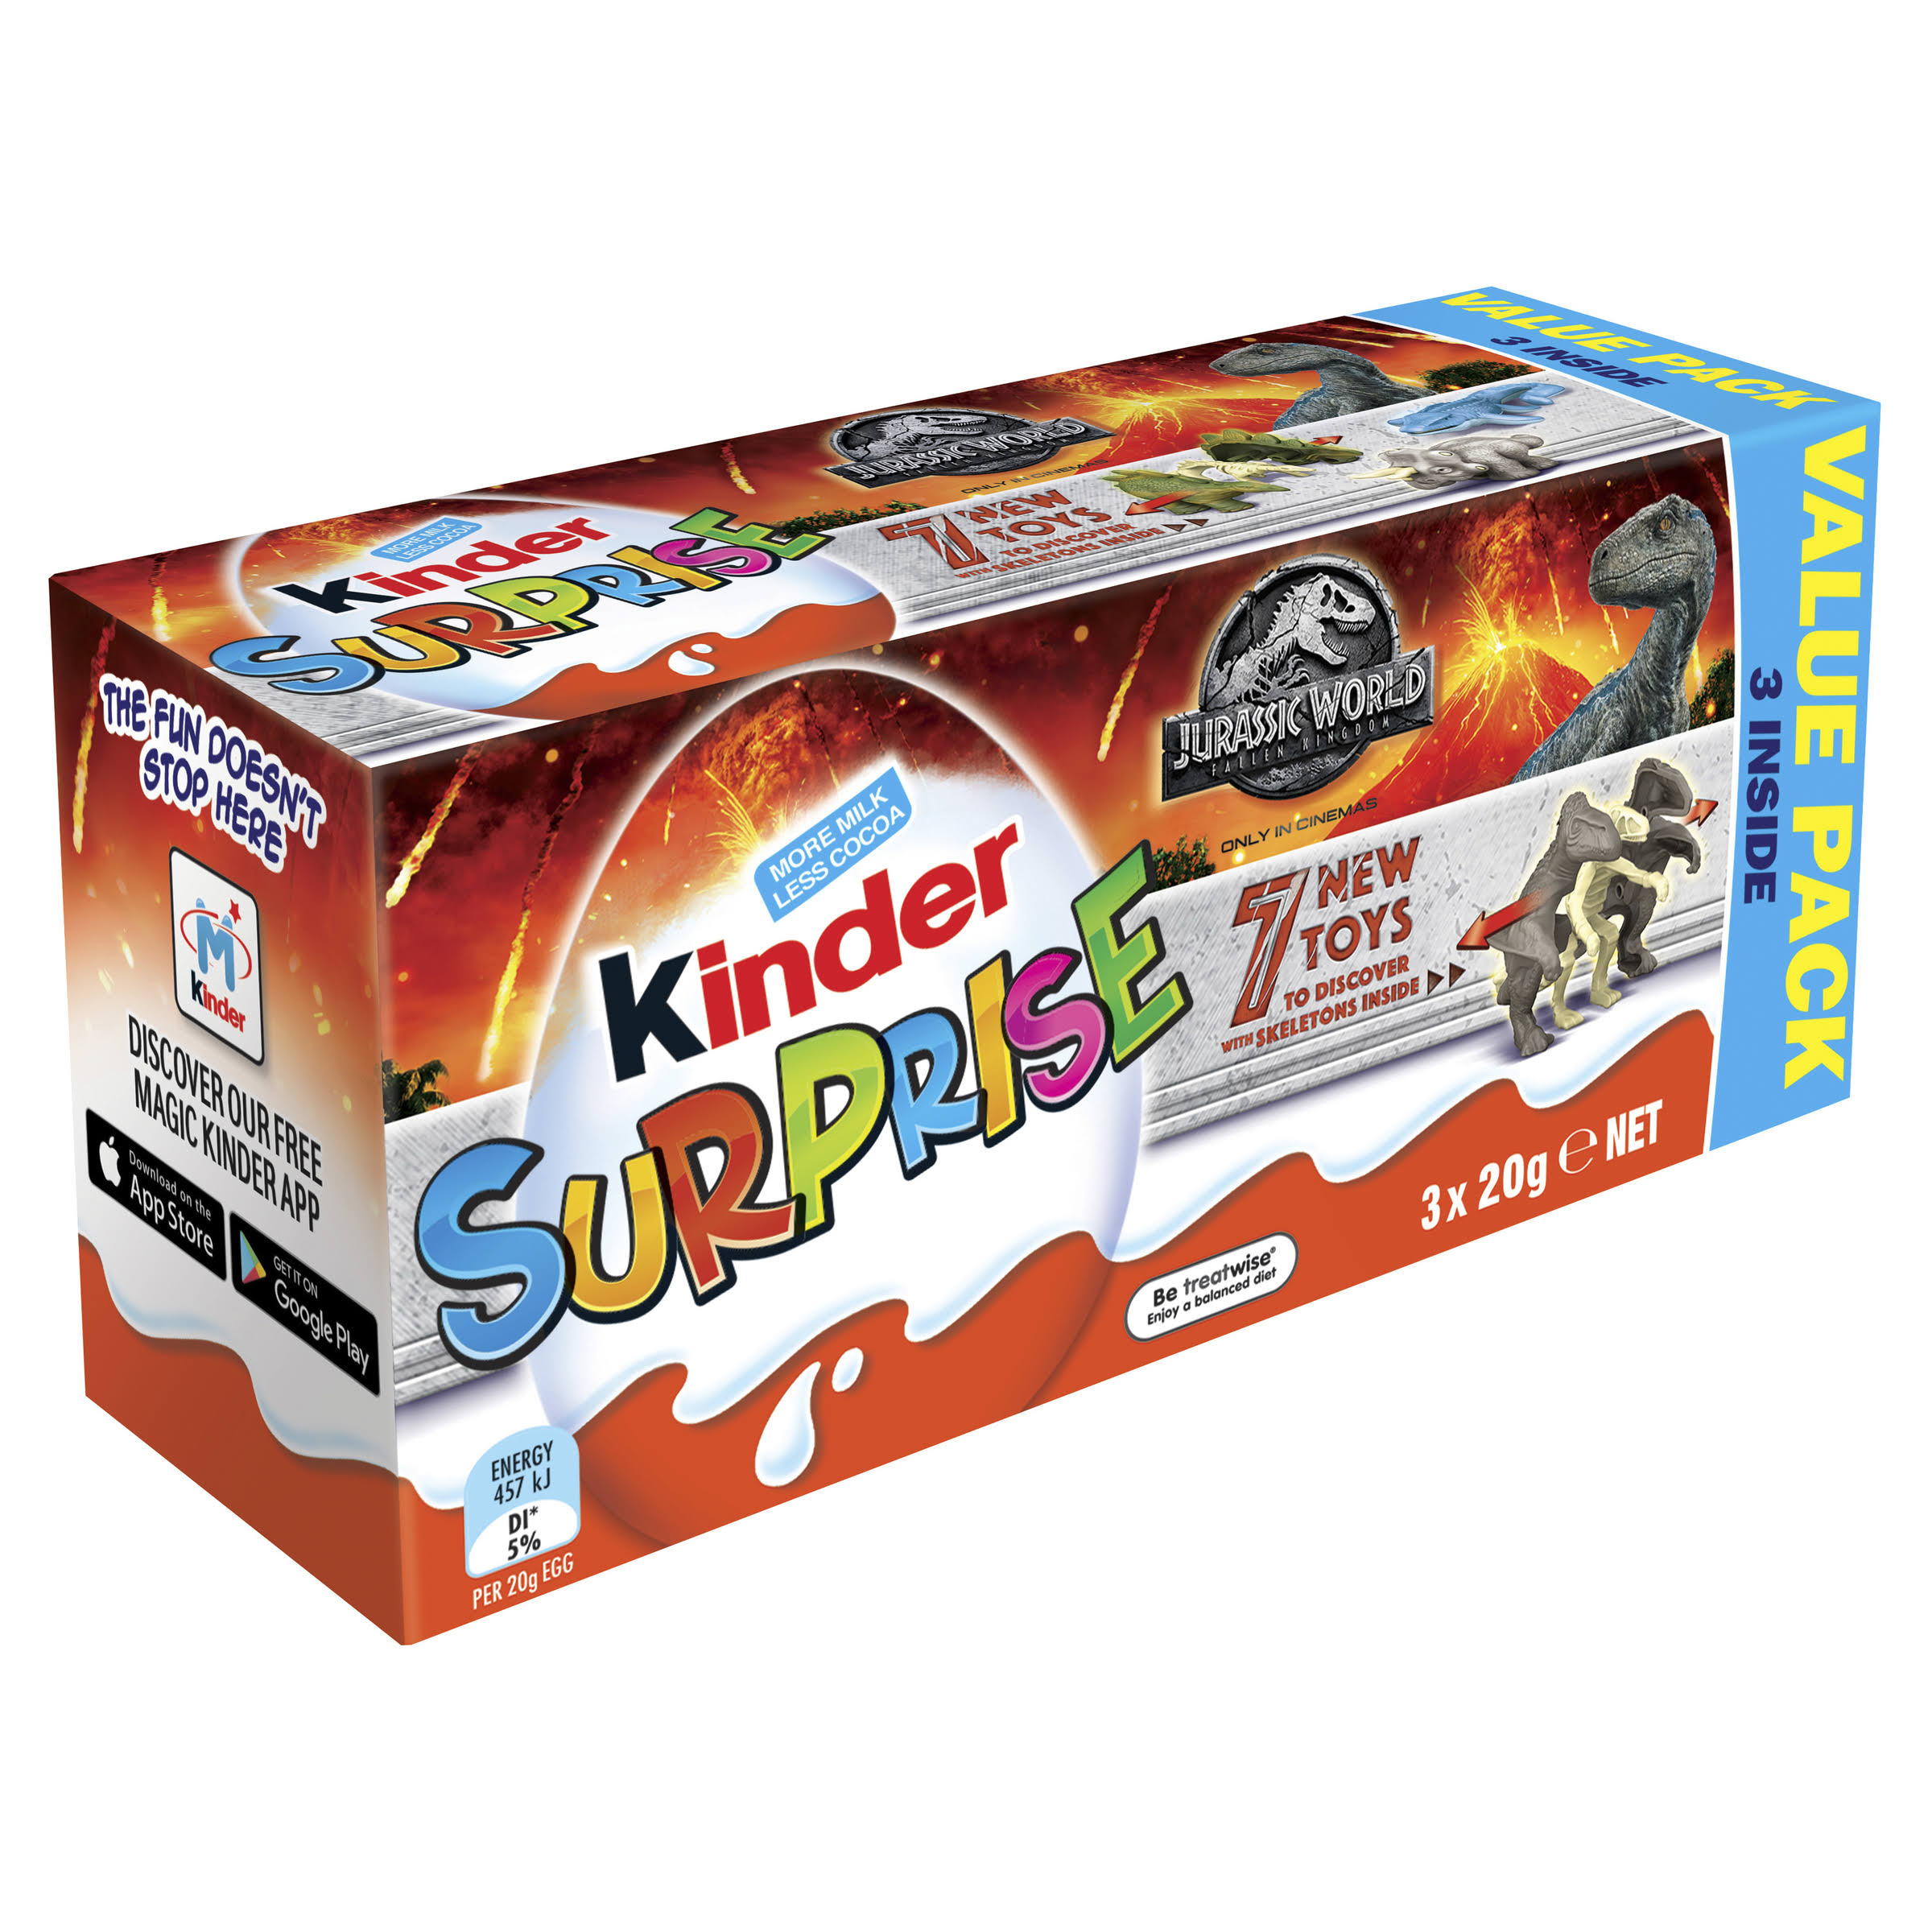 Kinder Surprise Chocolate Egg - 3 Pack